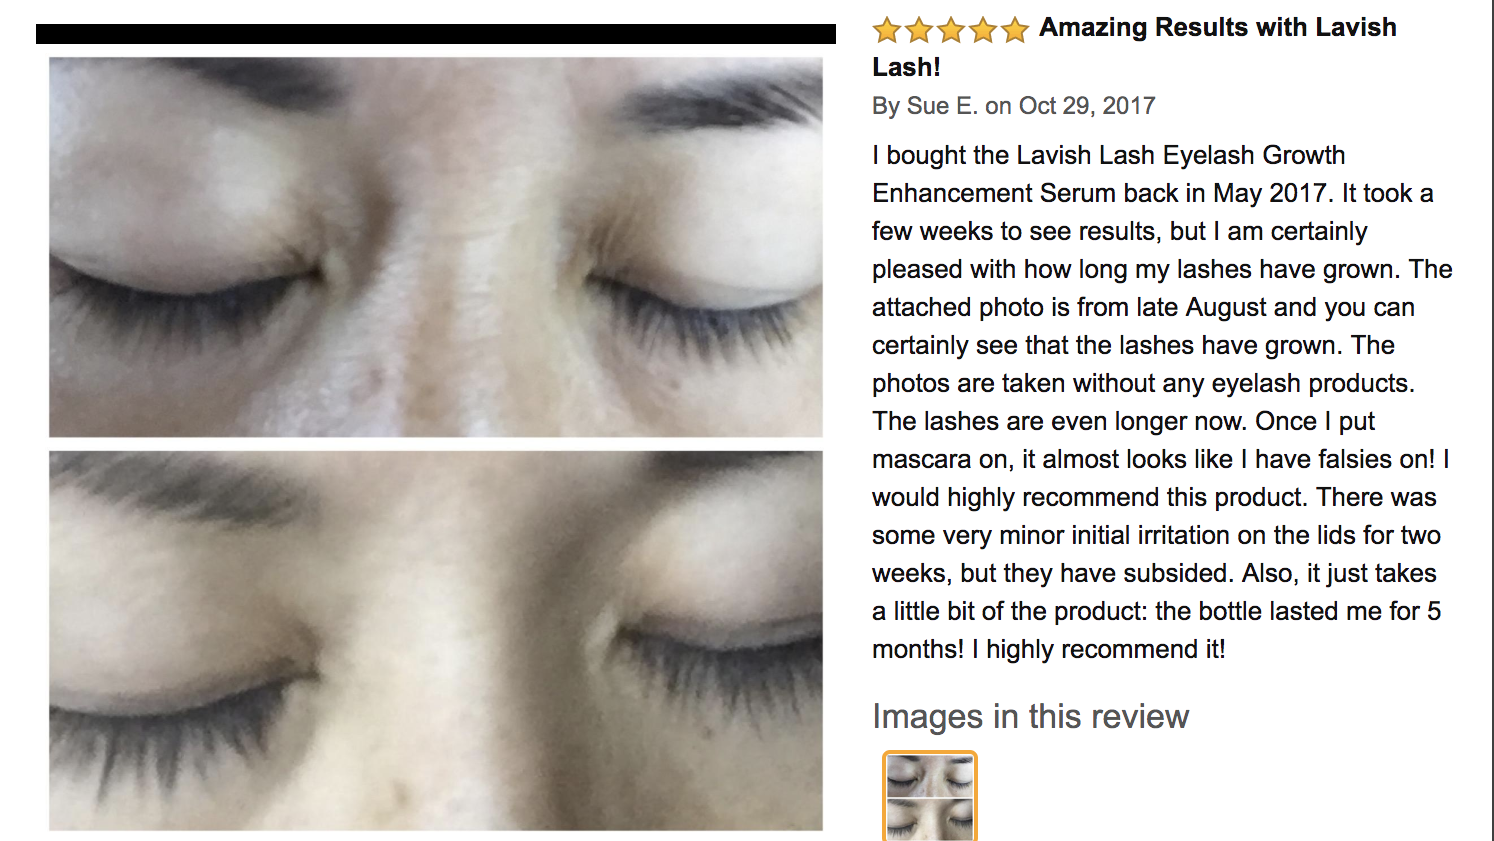 eyelash-serum review amazon woman health wellbeing product